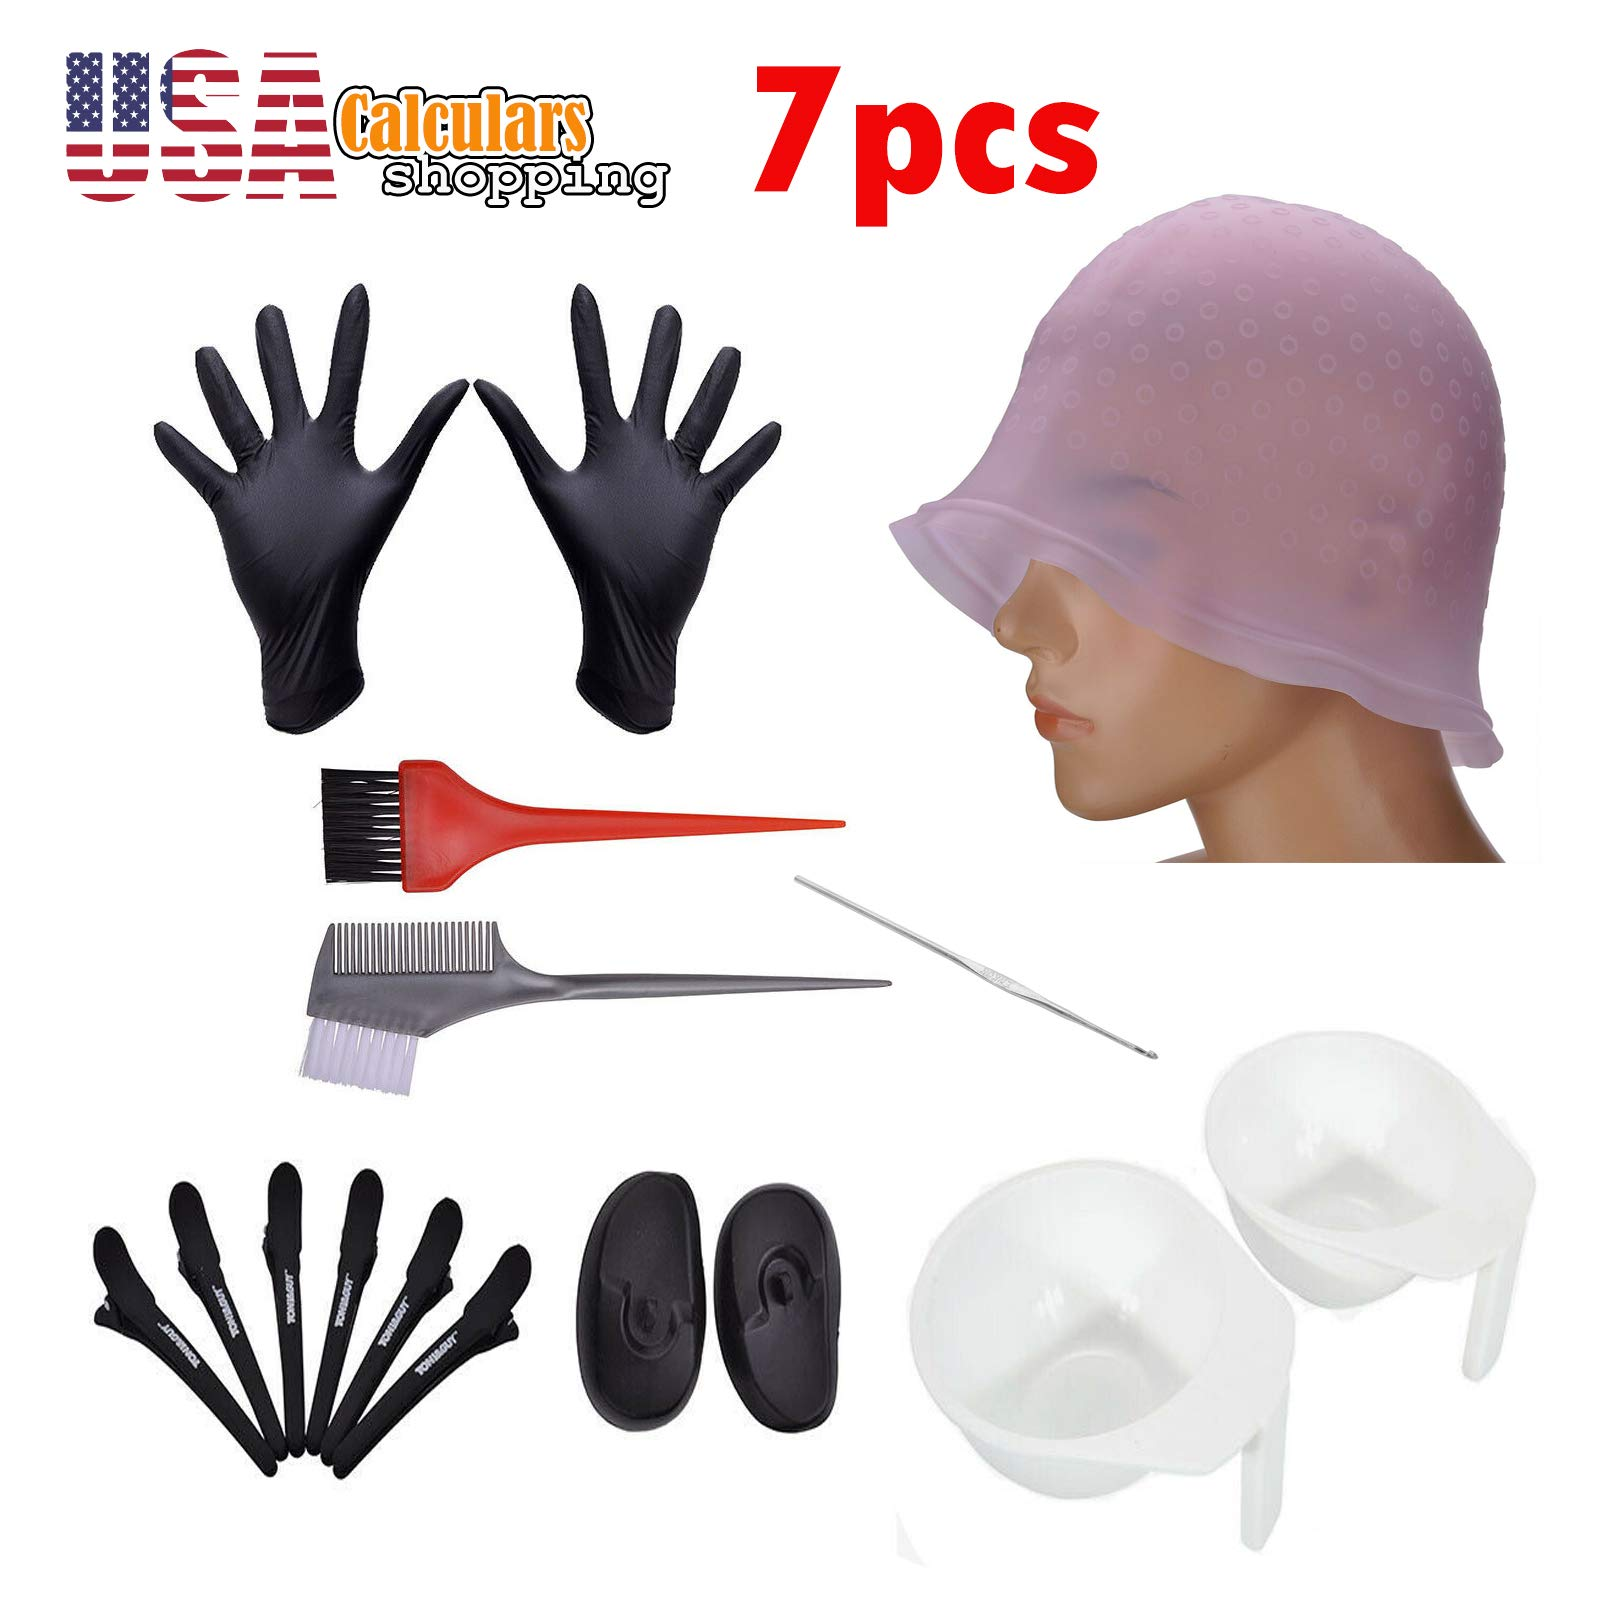 US Seller Hair Coloring Dyeing Kit Color Dye Brush Glove Mixing Bowl Clip Tint Tool by Calculars